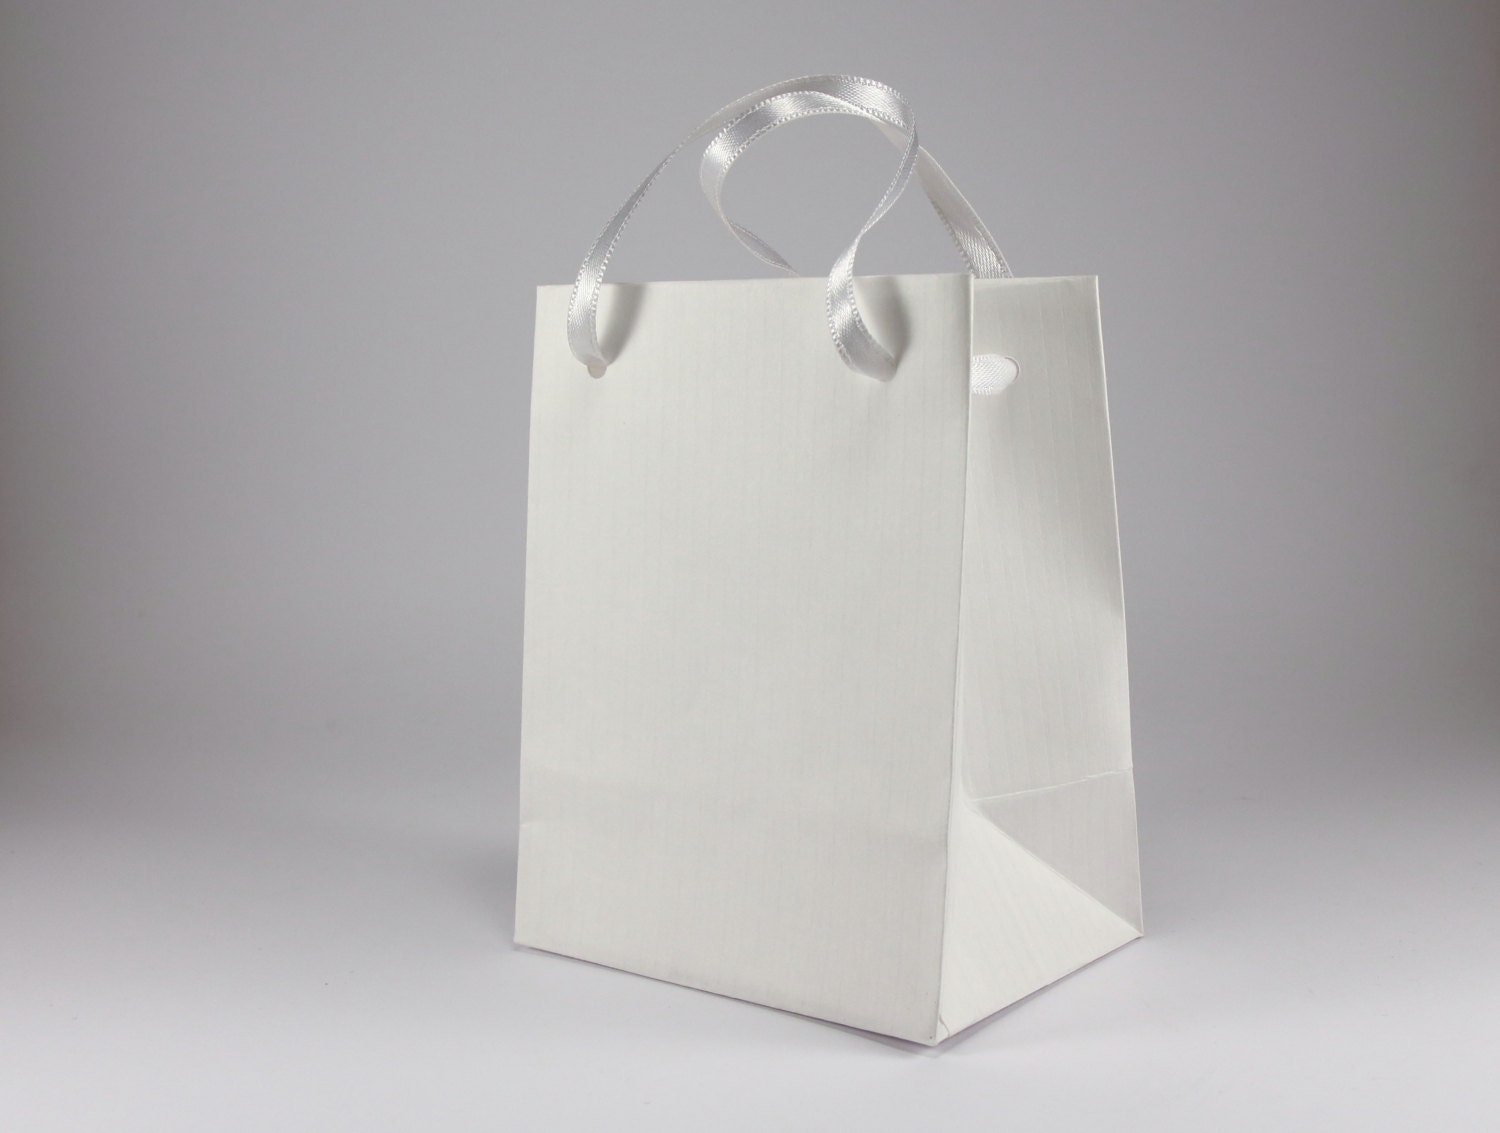 50 Extra Small WHITE Gift Bags handmade of White Ribbed Paper